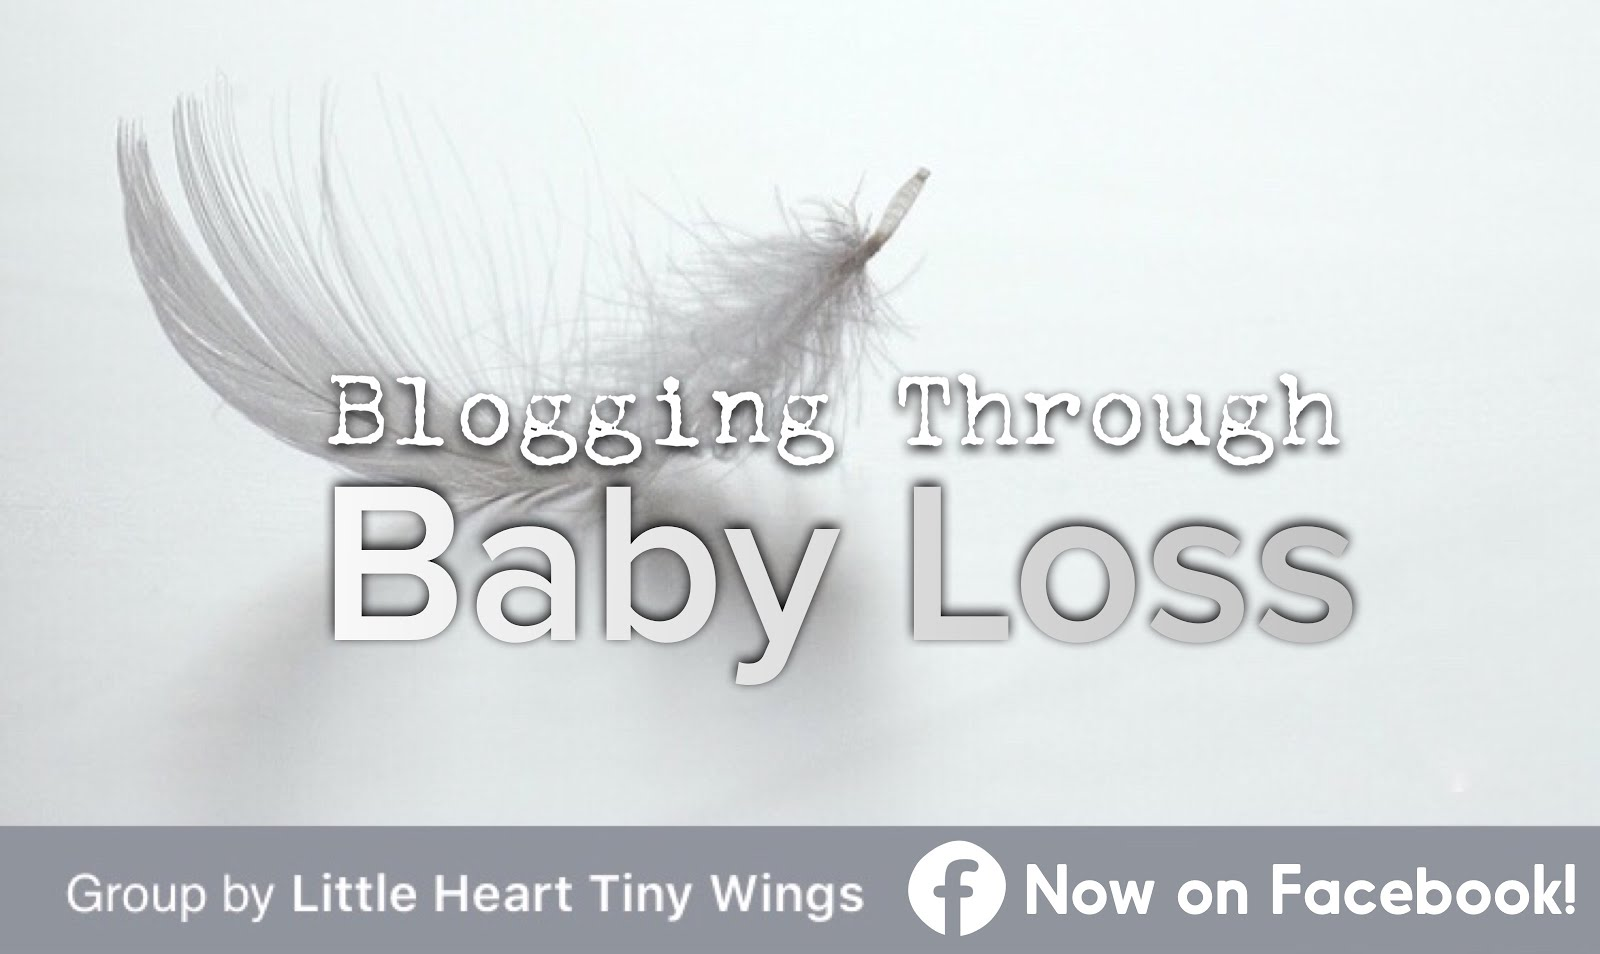 A Facebook group for baby loss parents